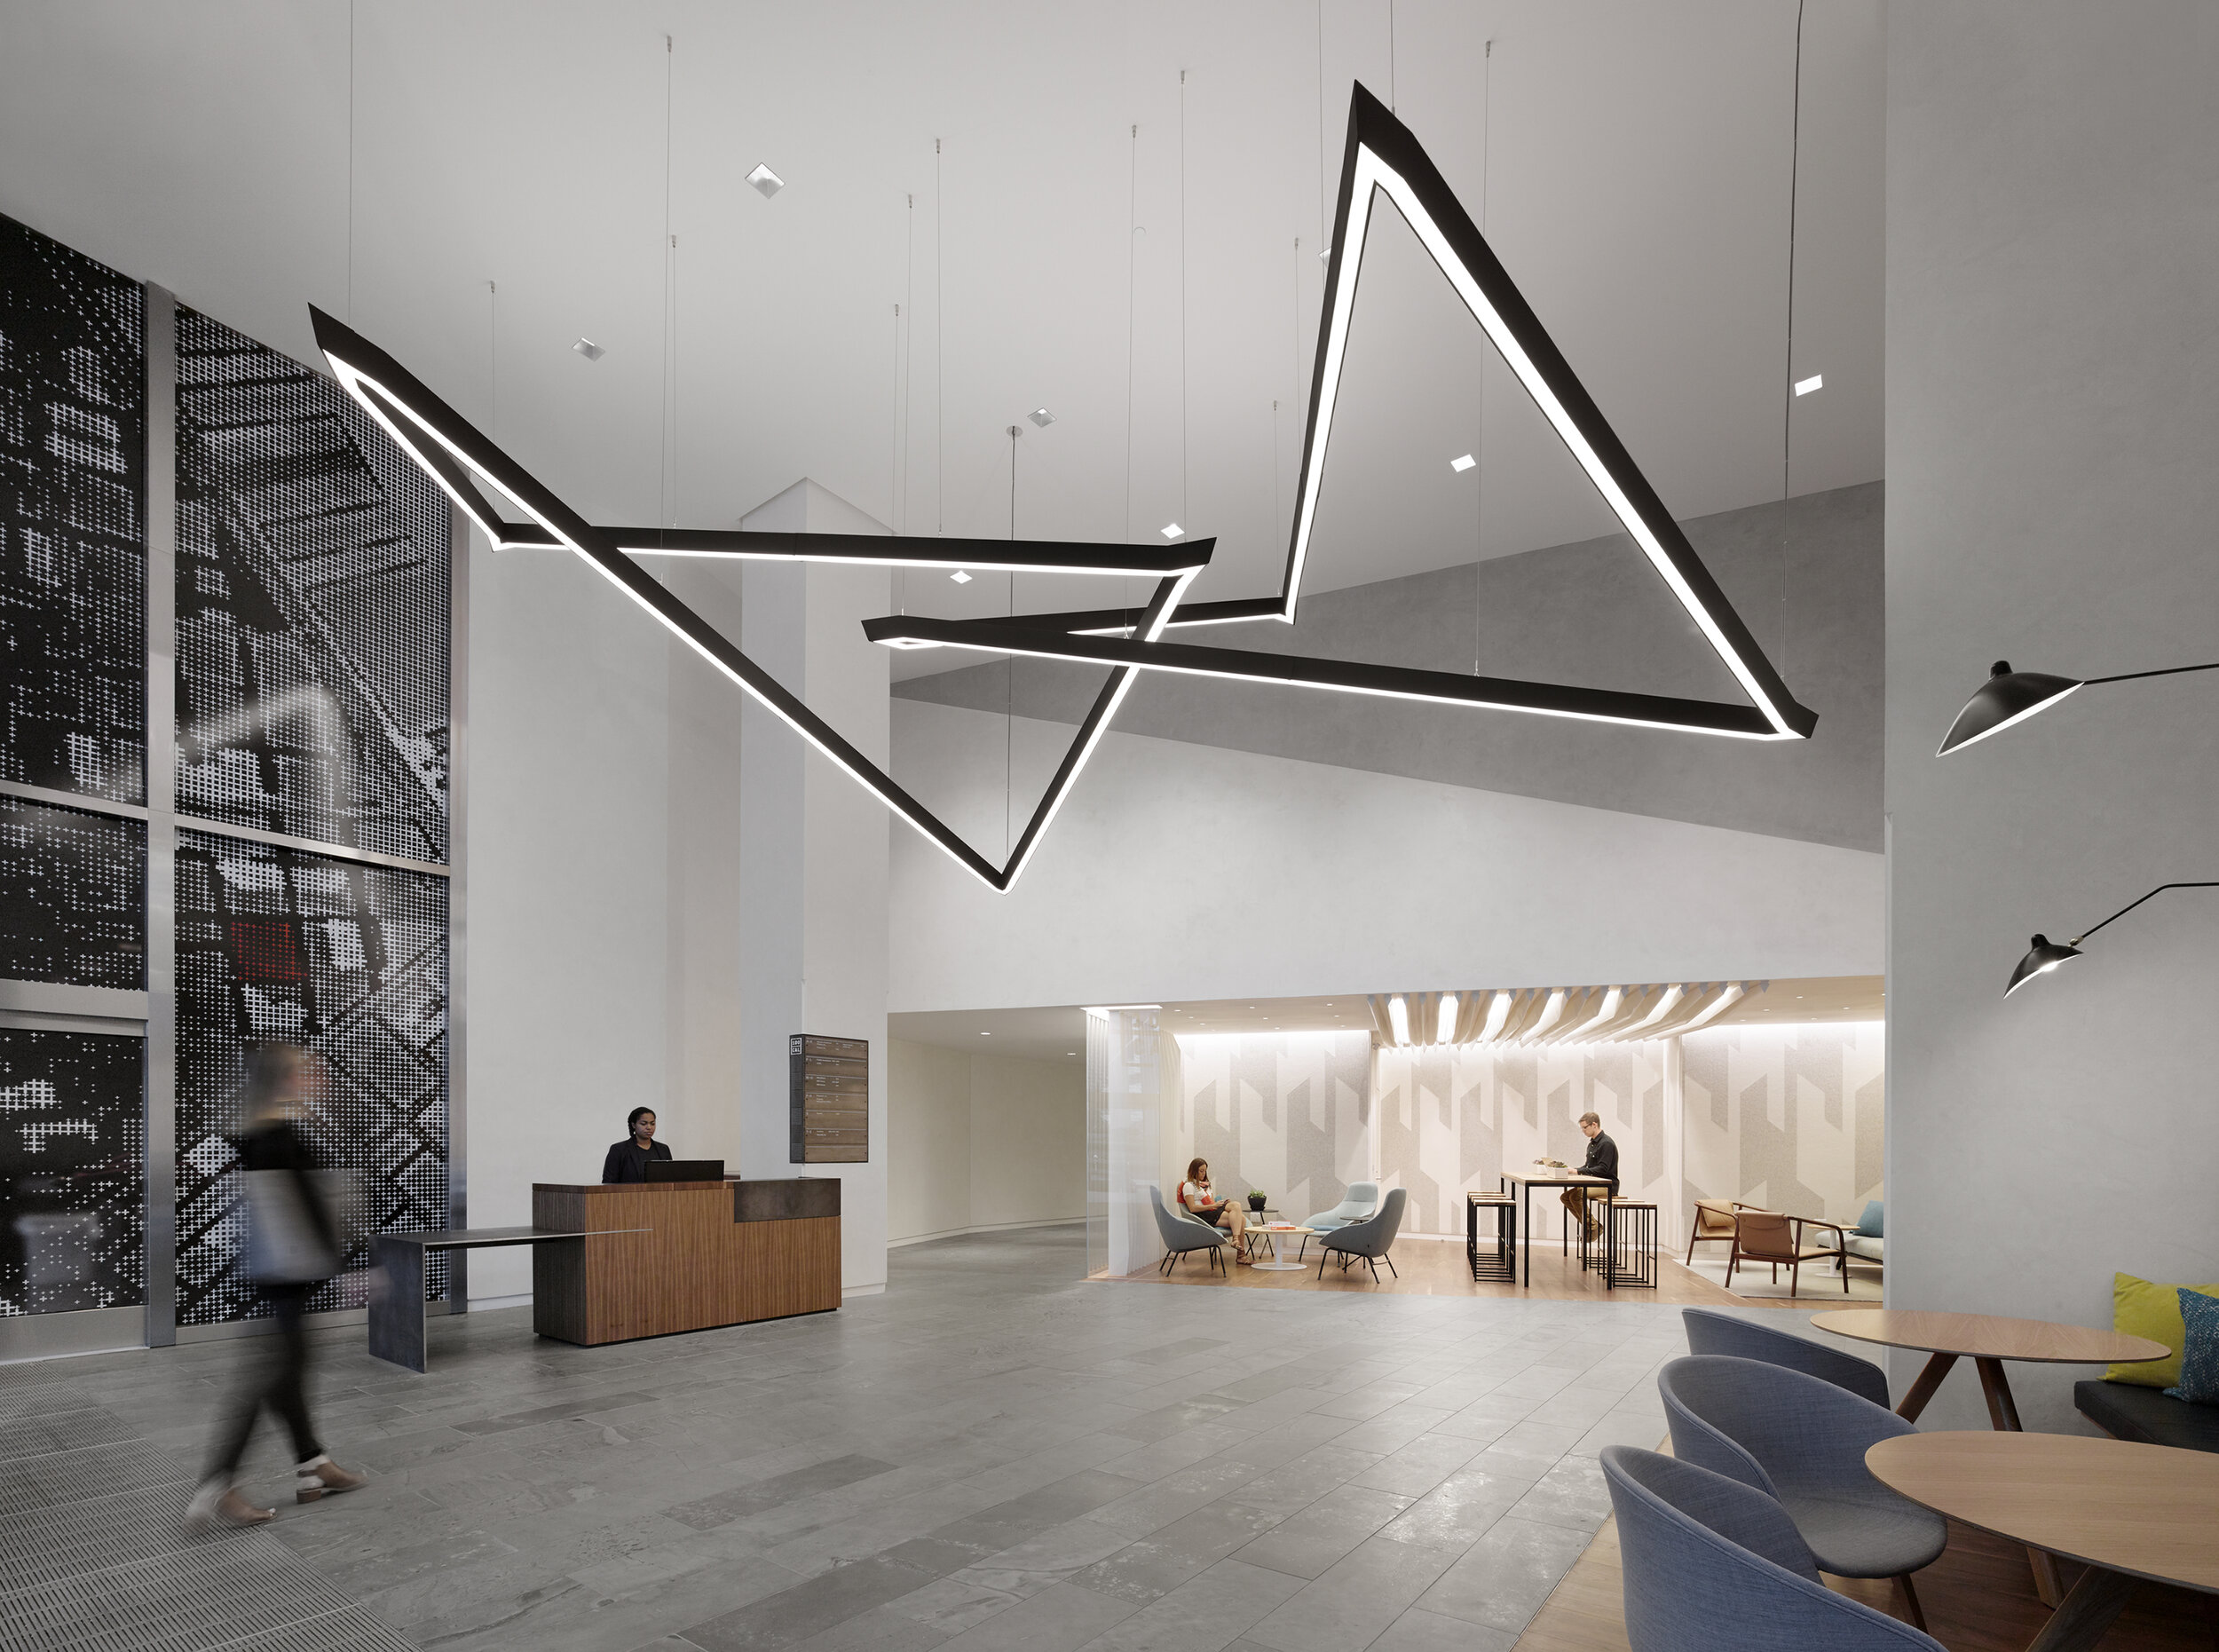 California lobby and amenity space by Blitz. Image courtesy of Matthew Millman.